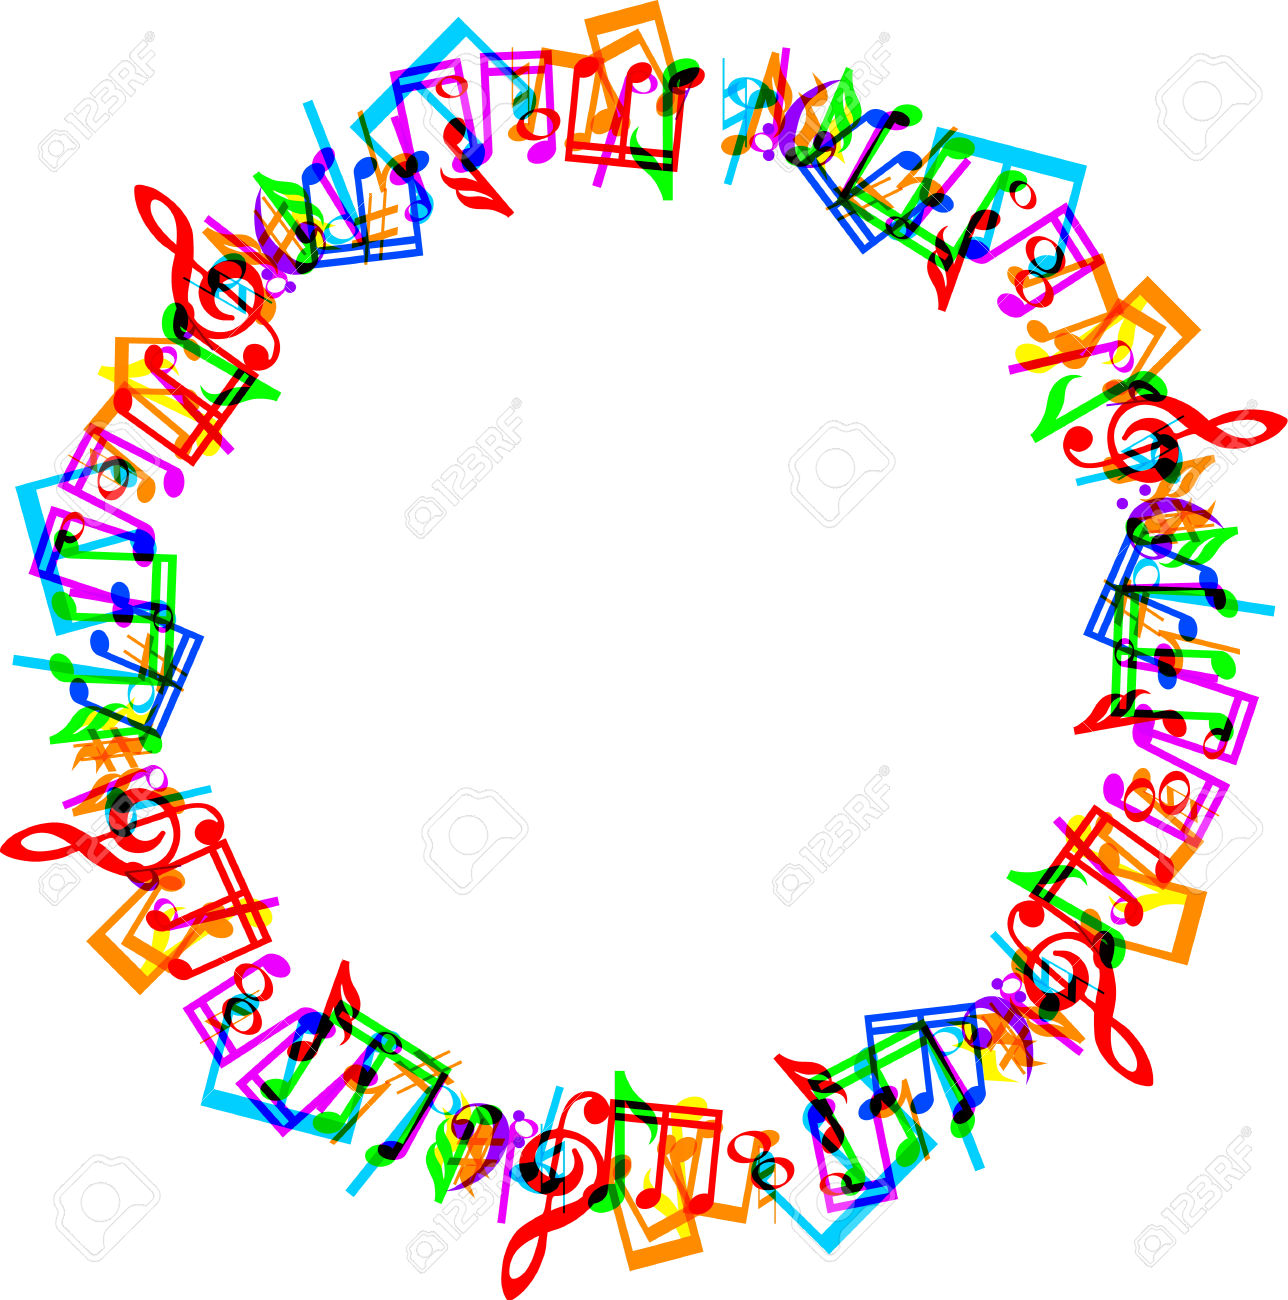 Colorful Music Notes Border Frame On White Background Royalty Free.